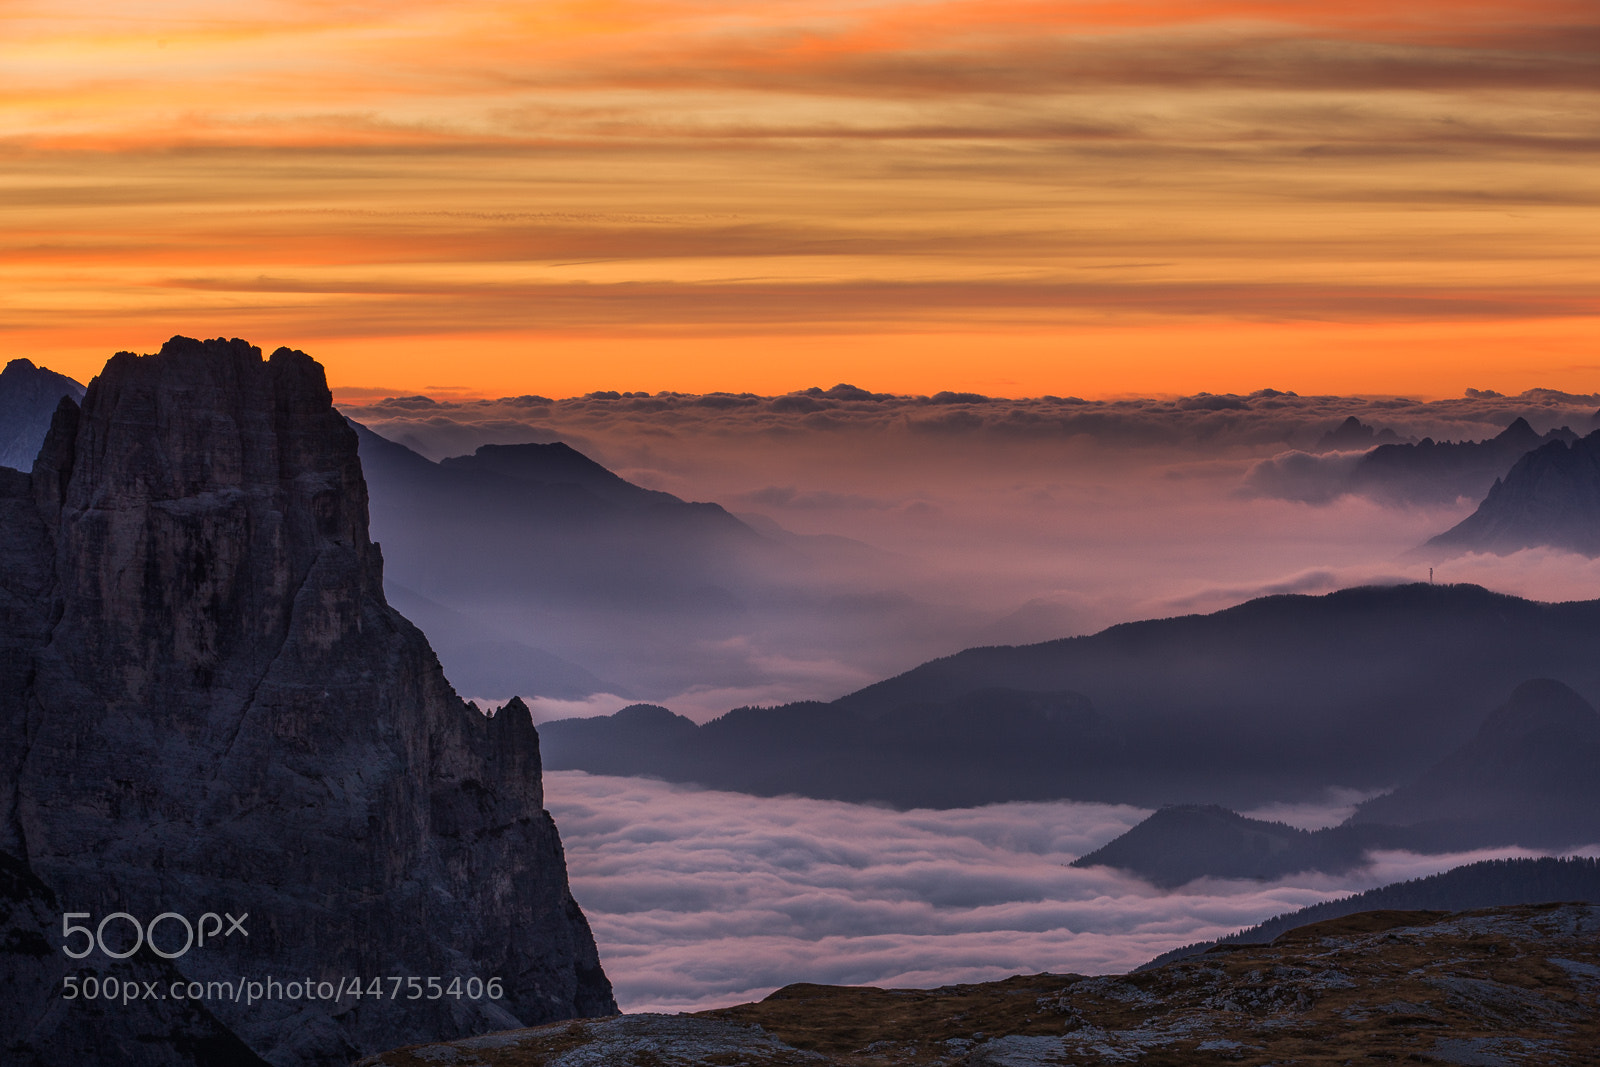 Photograph Morning at Tre Cime di Lavaredo, Dolomites by Hans Kruse on 500px